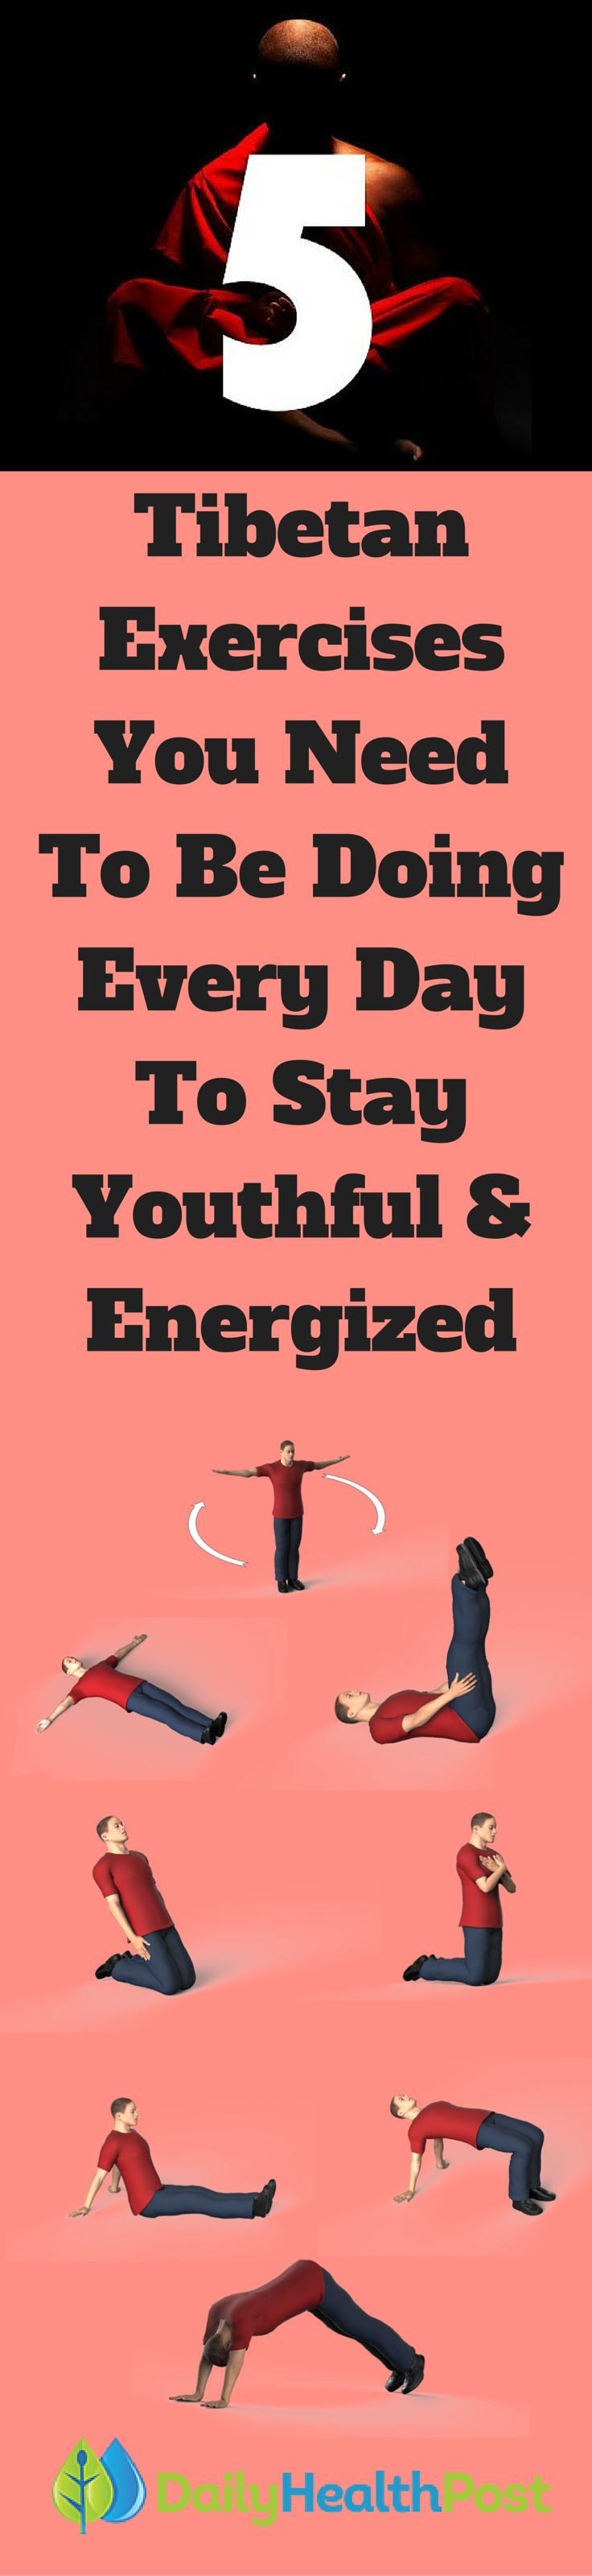 It's no secret that a long life starts with your daily habit. Many people chase youth and health but have trouble to committing to these healthy habits. If you don't know where to start on your journey of wellness, try the Tibetan 5 Rites, which are easy to do and don't require much time. Best of all, they'll leave you feeling relaxed and refreshed!